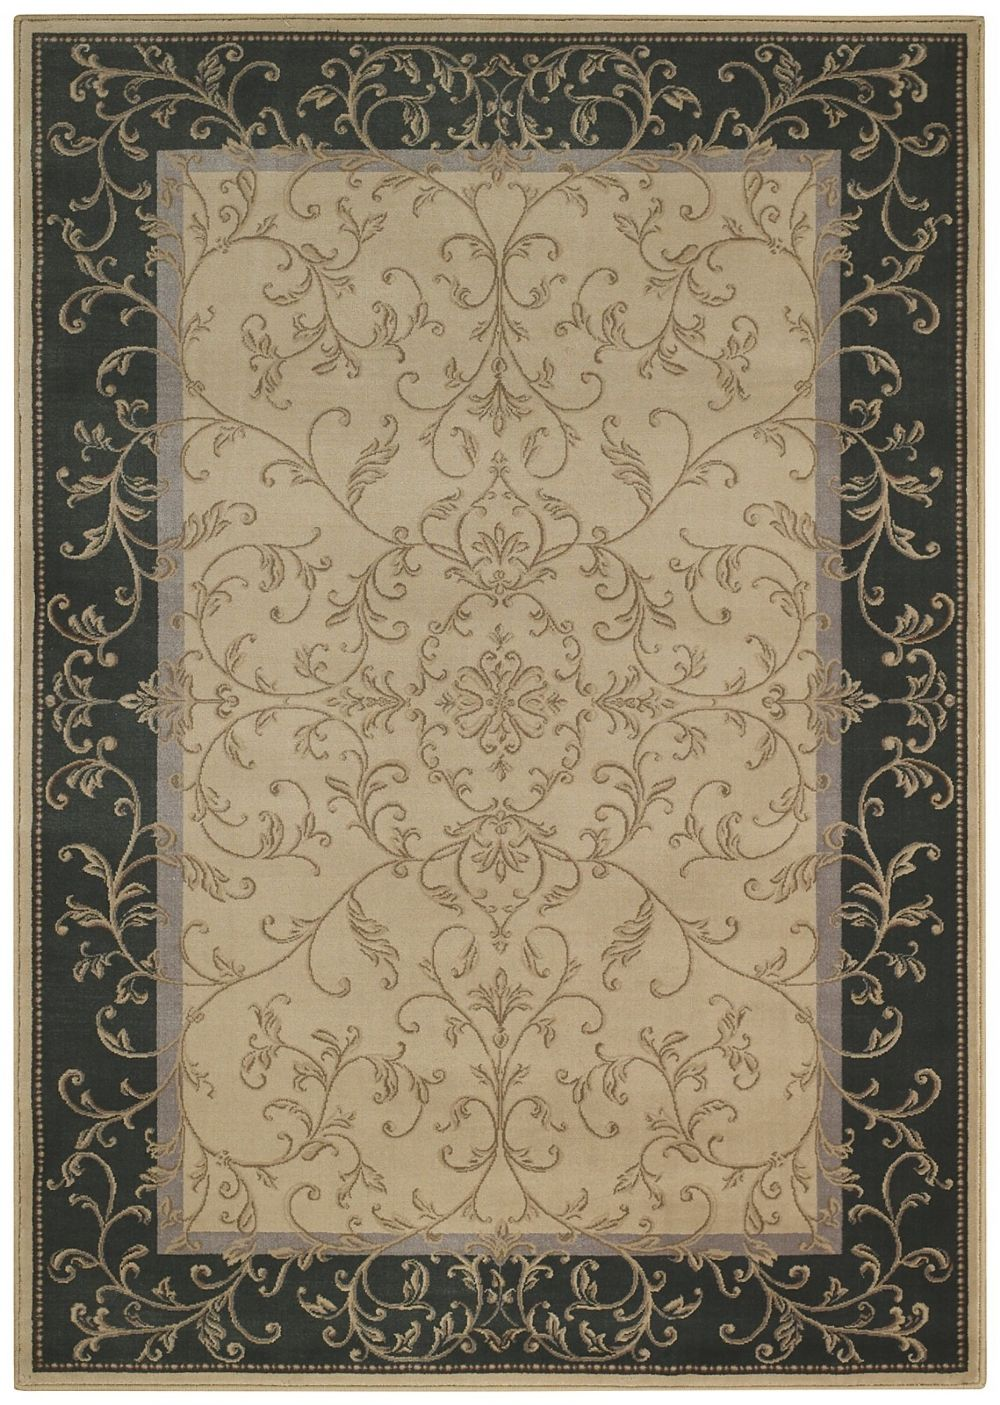 capel quiescent-scroll transitional area rug collection